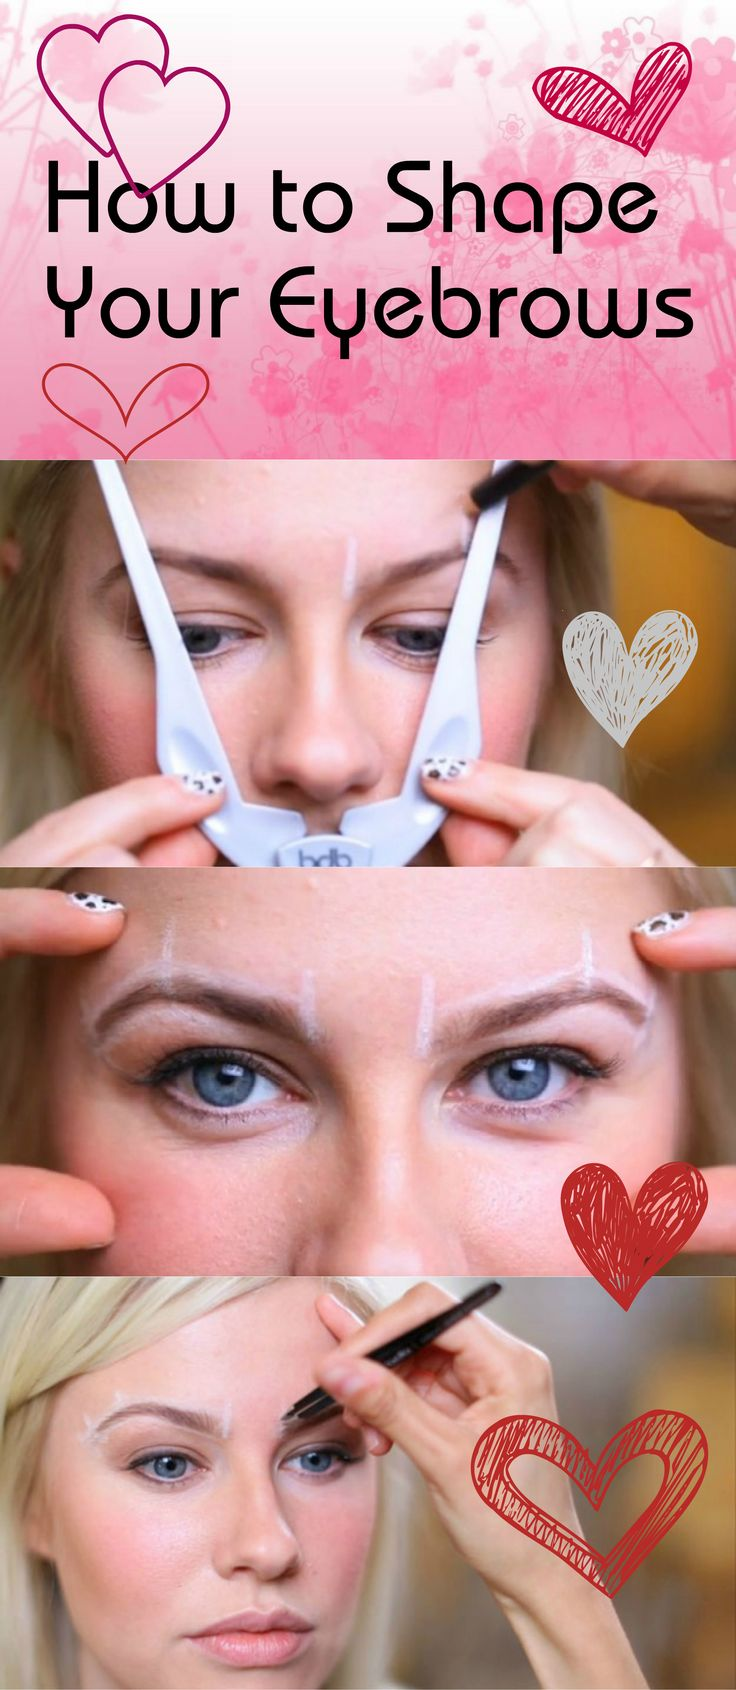 How to Find the Shape of Your Eyebrows | Easy Beauty Tips and Tricks by Makeup Tutorials at http://makeuptutorials.com/makeup-tutorial-how-to-shape-your-eyebrows